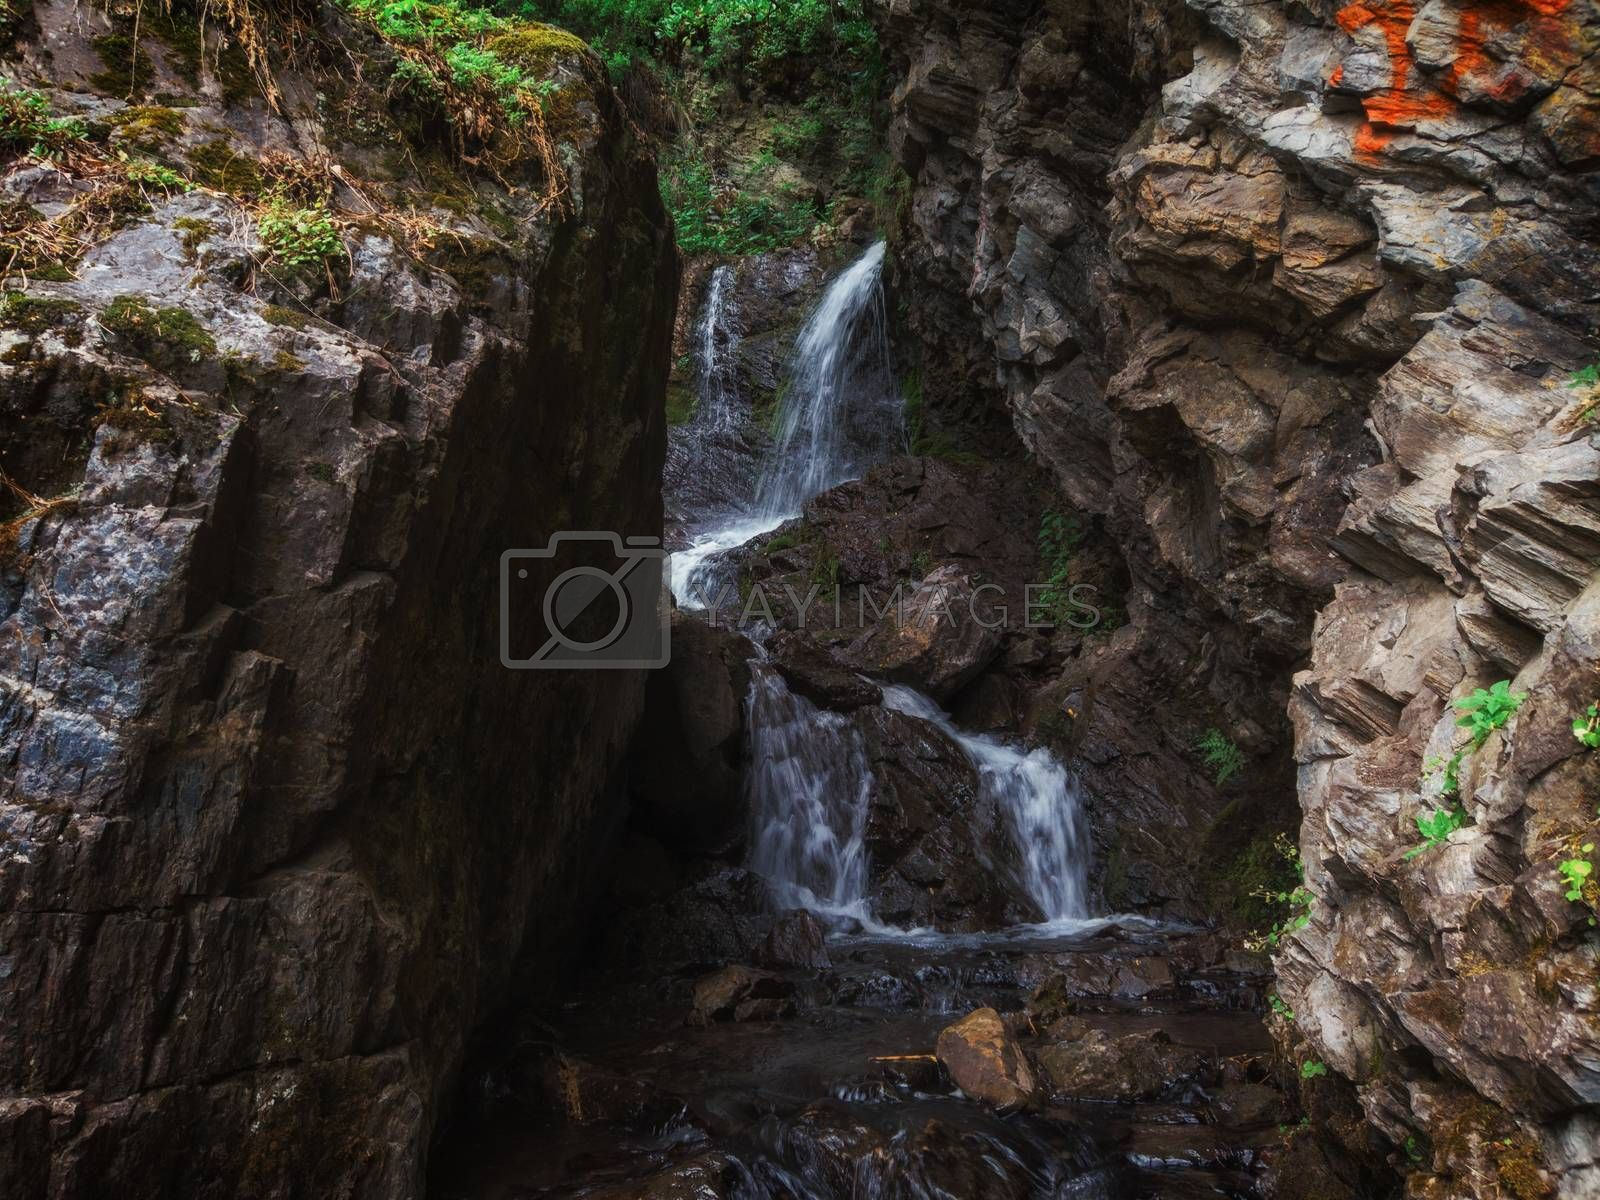 Waterfall Cheremshansky in Altai Mountains territory, West Siberia, Russia